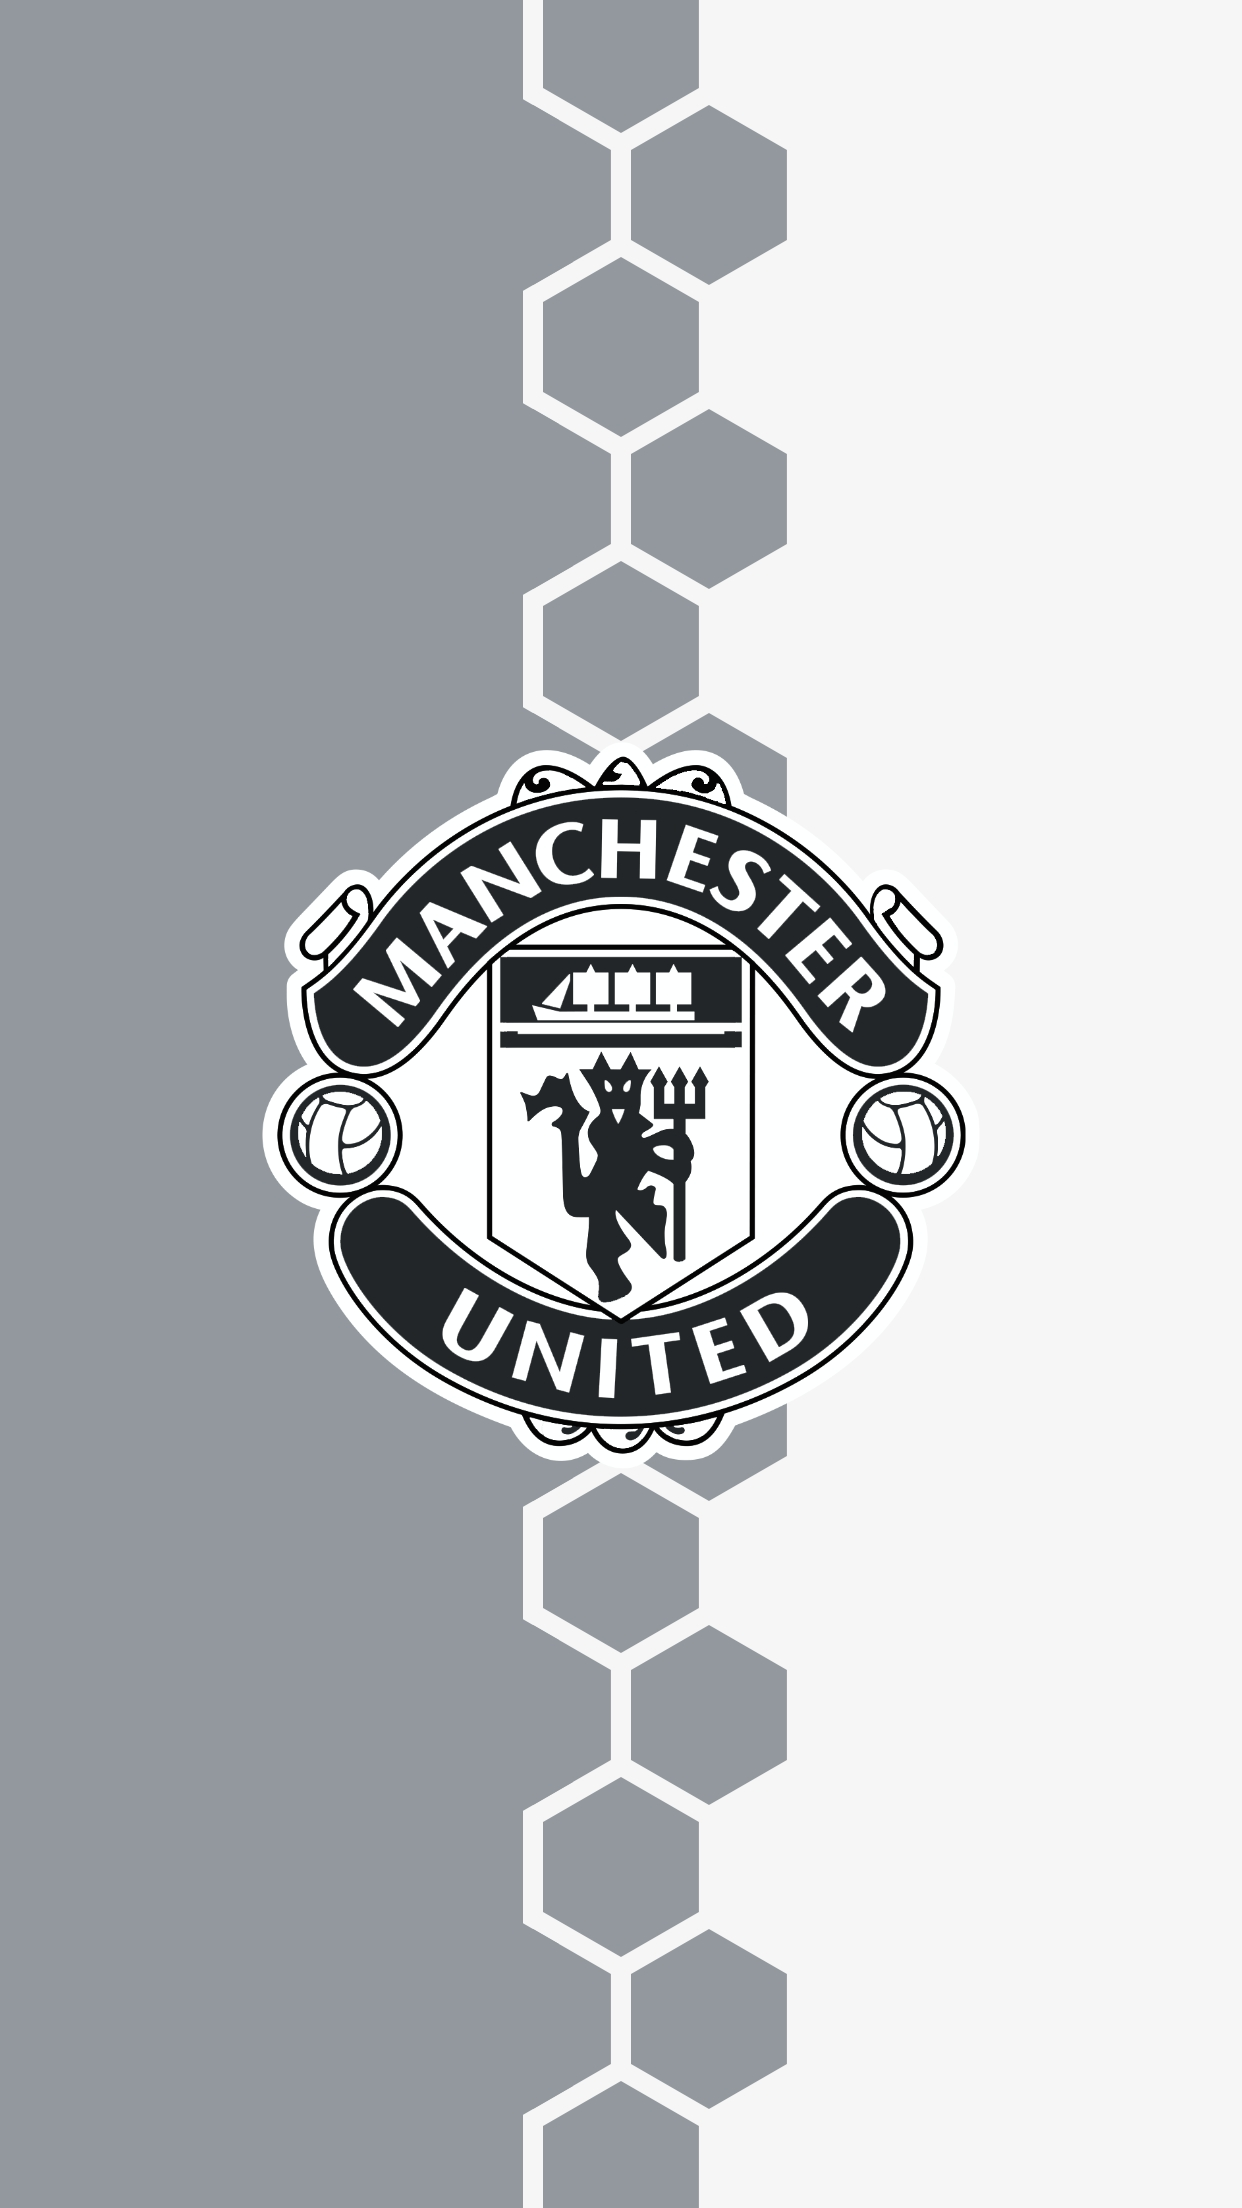 10 Latest Manchester United Wallpapers Iphone Full Hd 1080p For Pc